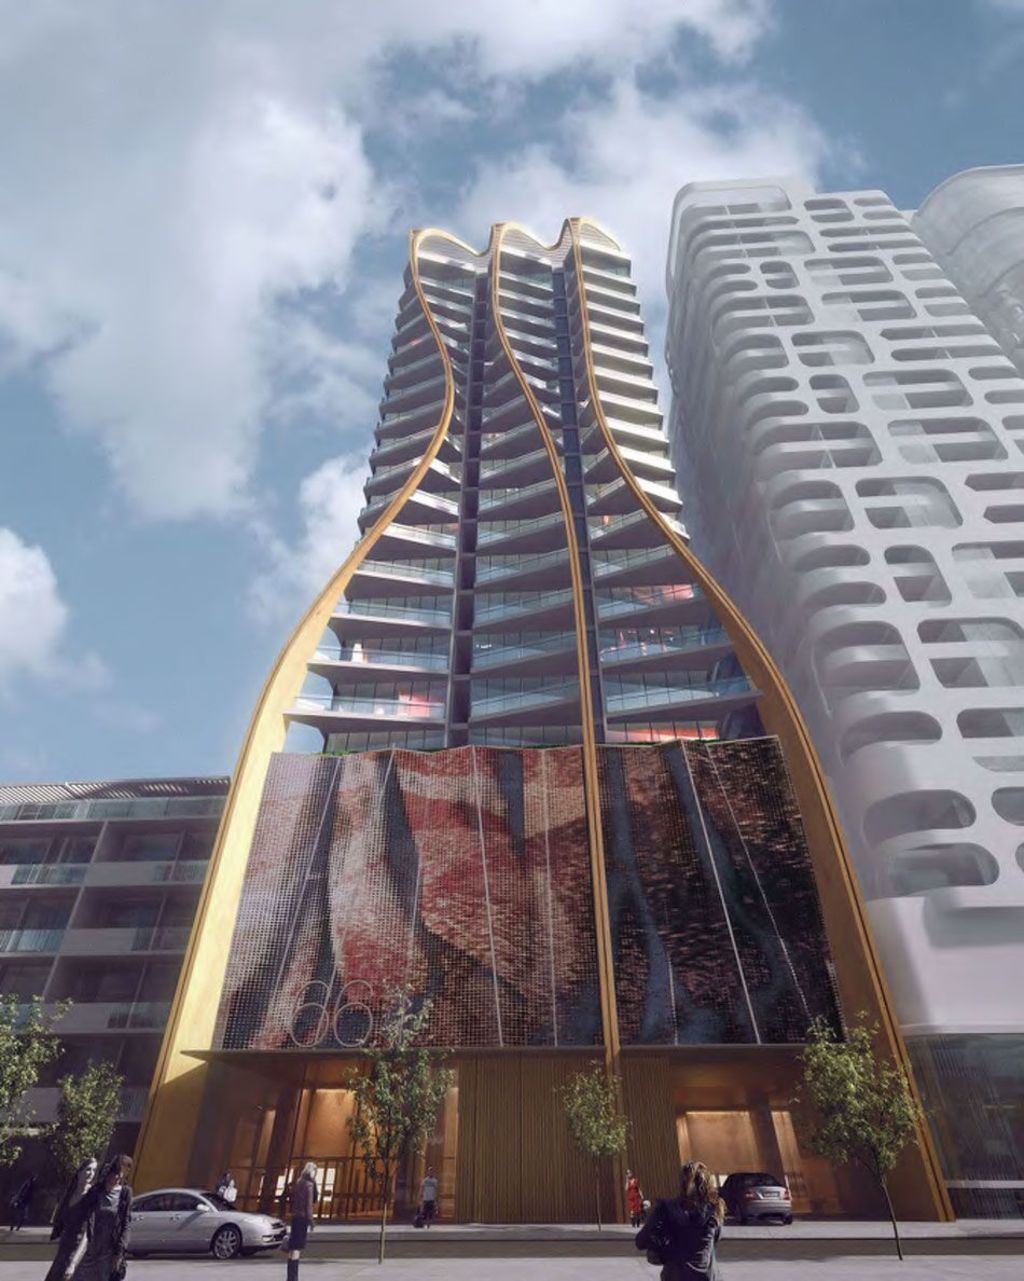 An_amazing_proposal_for_Brisbane_is_The_Waterfall_building_which_will_have_a_tall_waterfall_embedded_in_its_fabriuc_sc123v